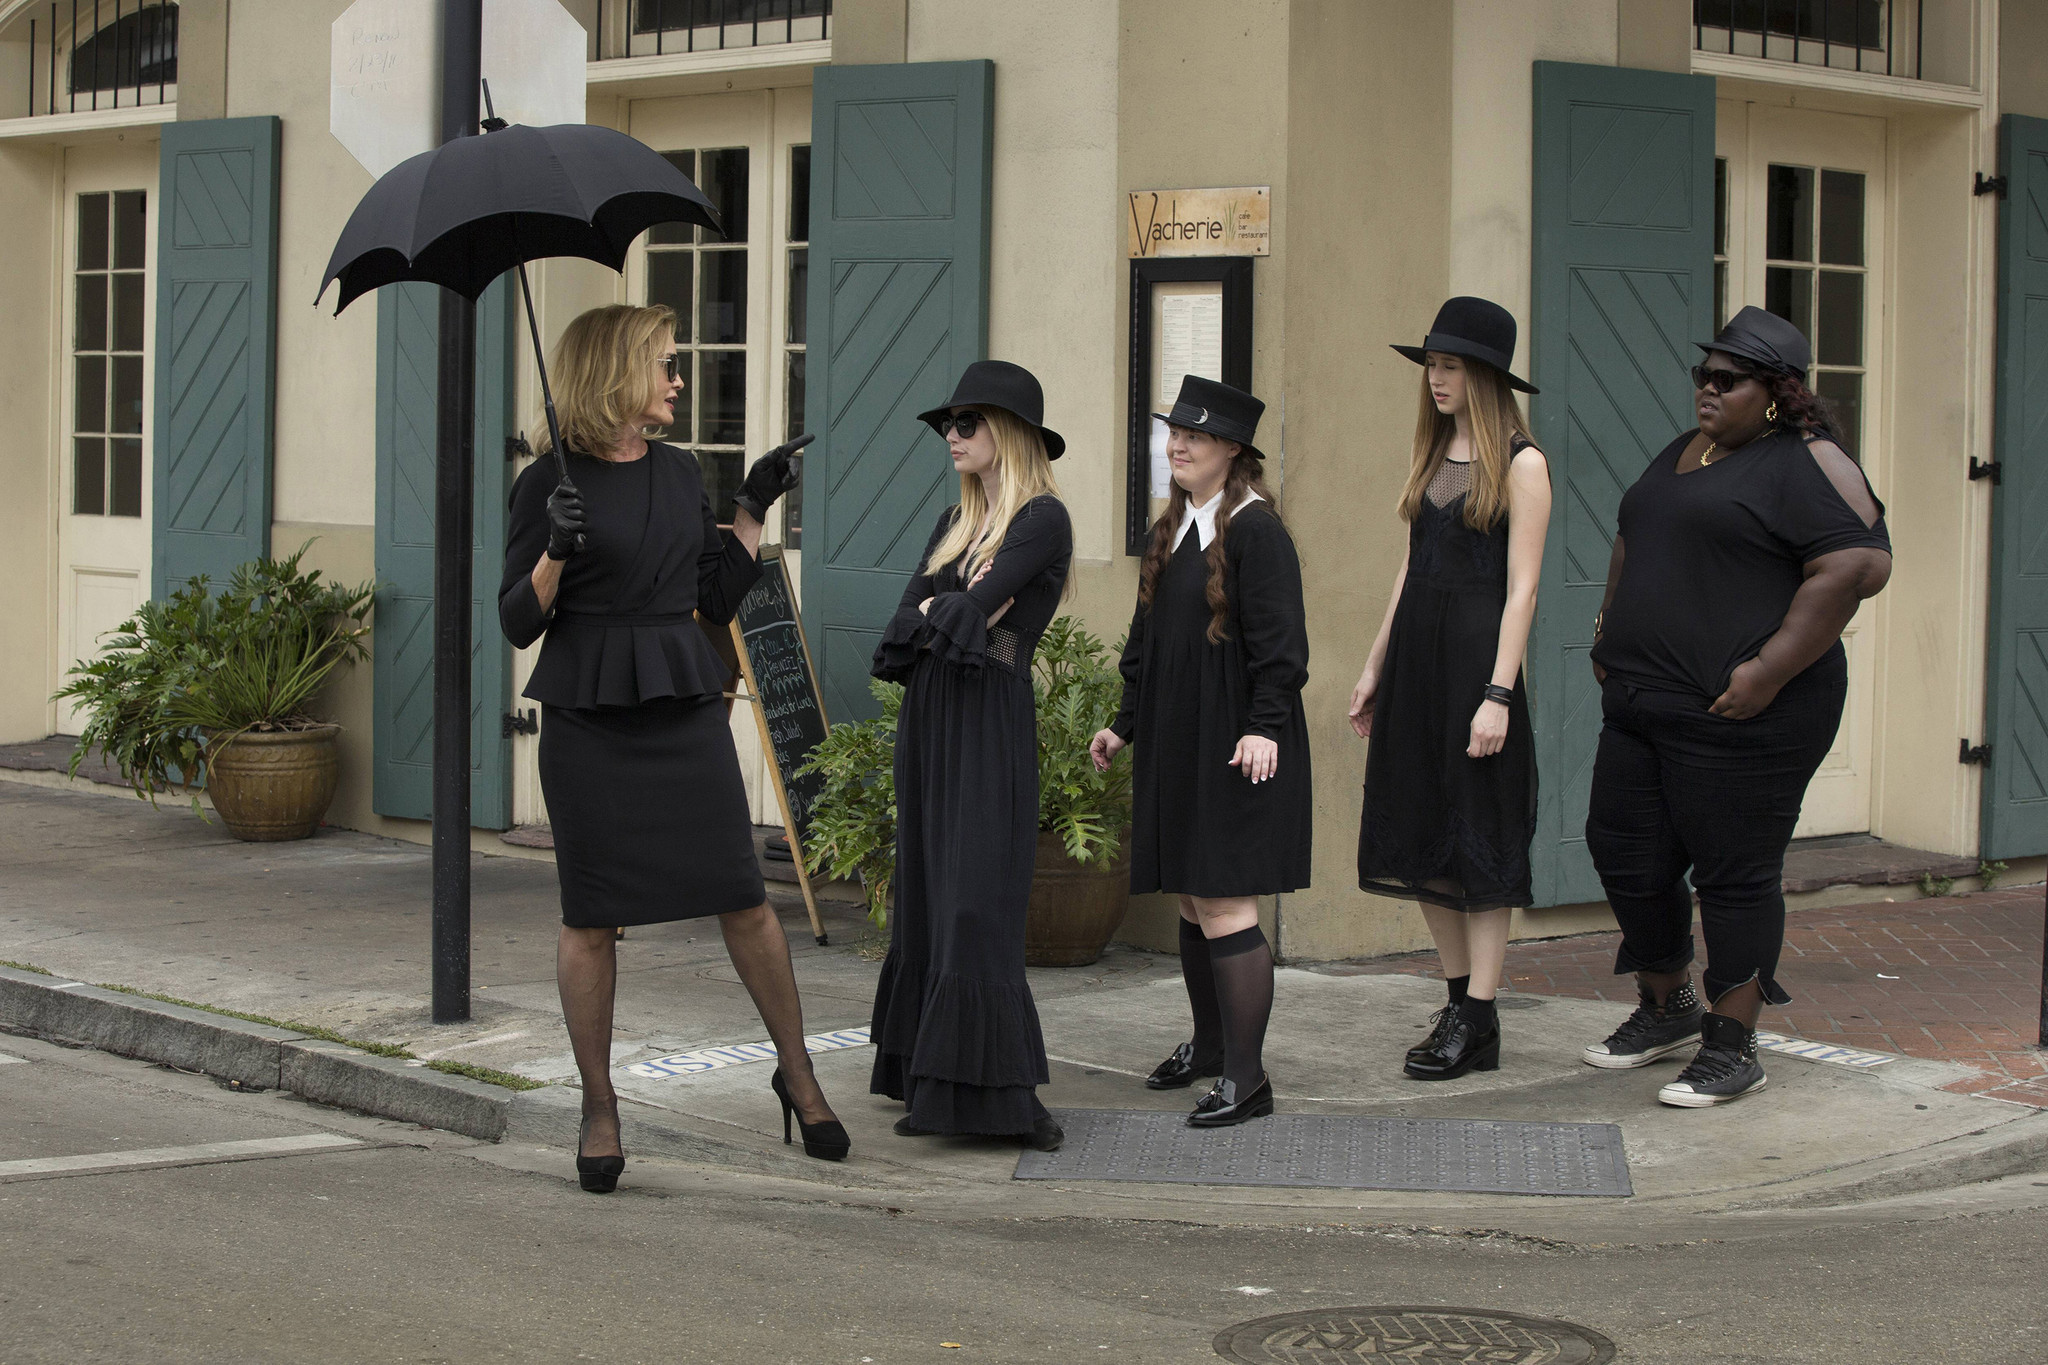 Taissa Farmiga on troubled witches in 'Coven' - Chicago Tribune